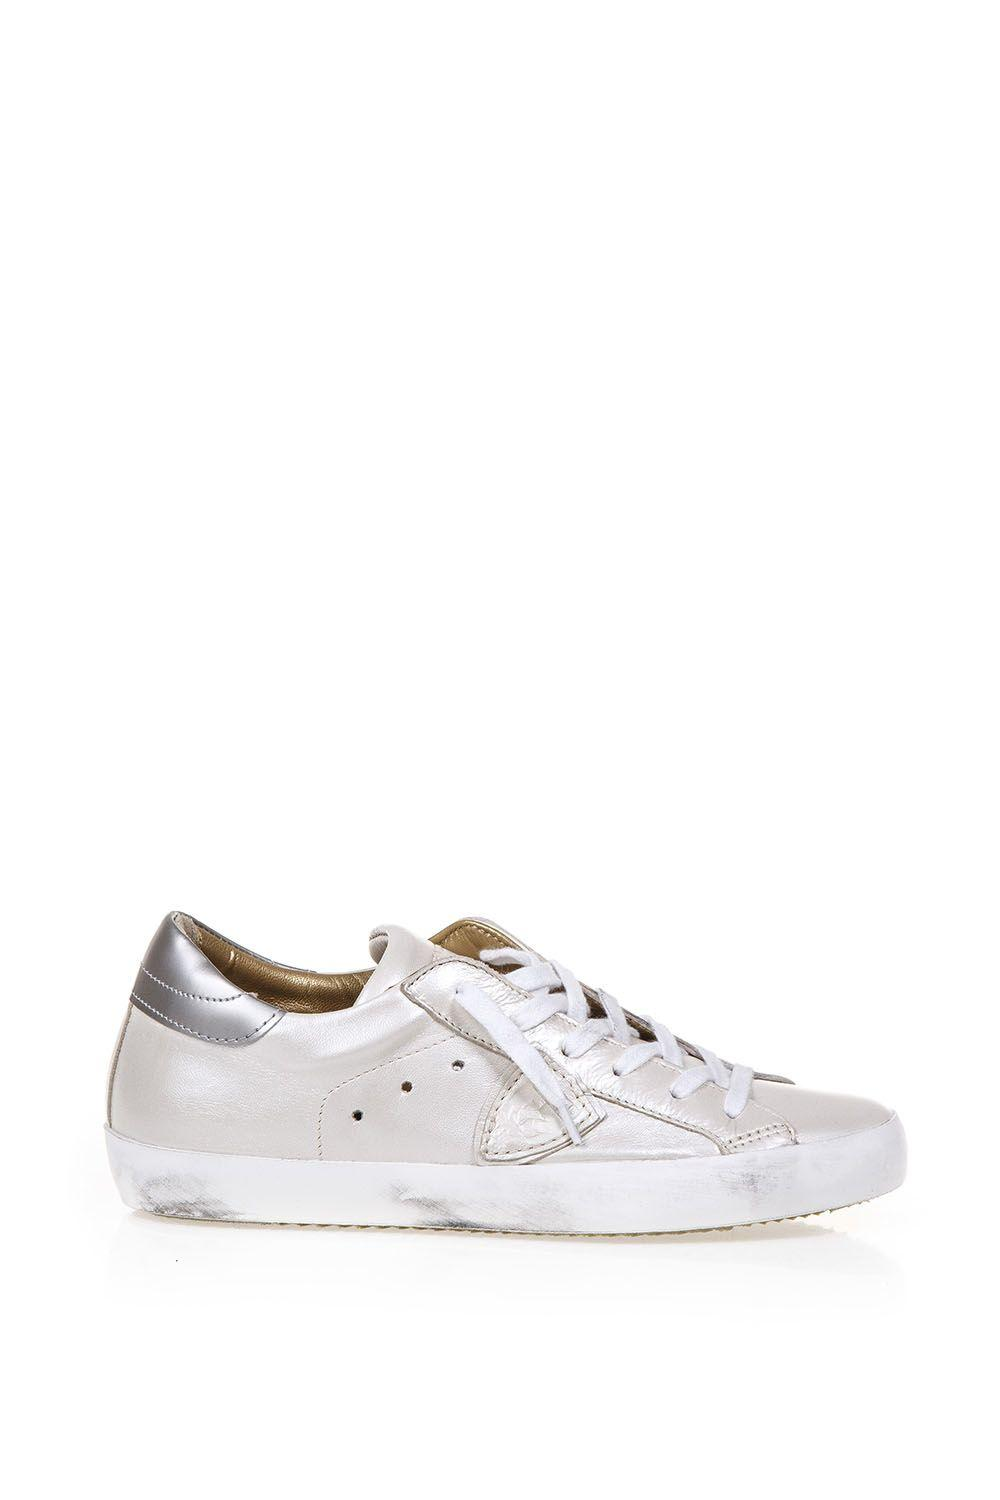 Philippe Model Sneakers Vintage Effect In White-platinum